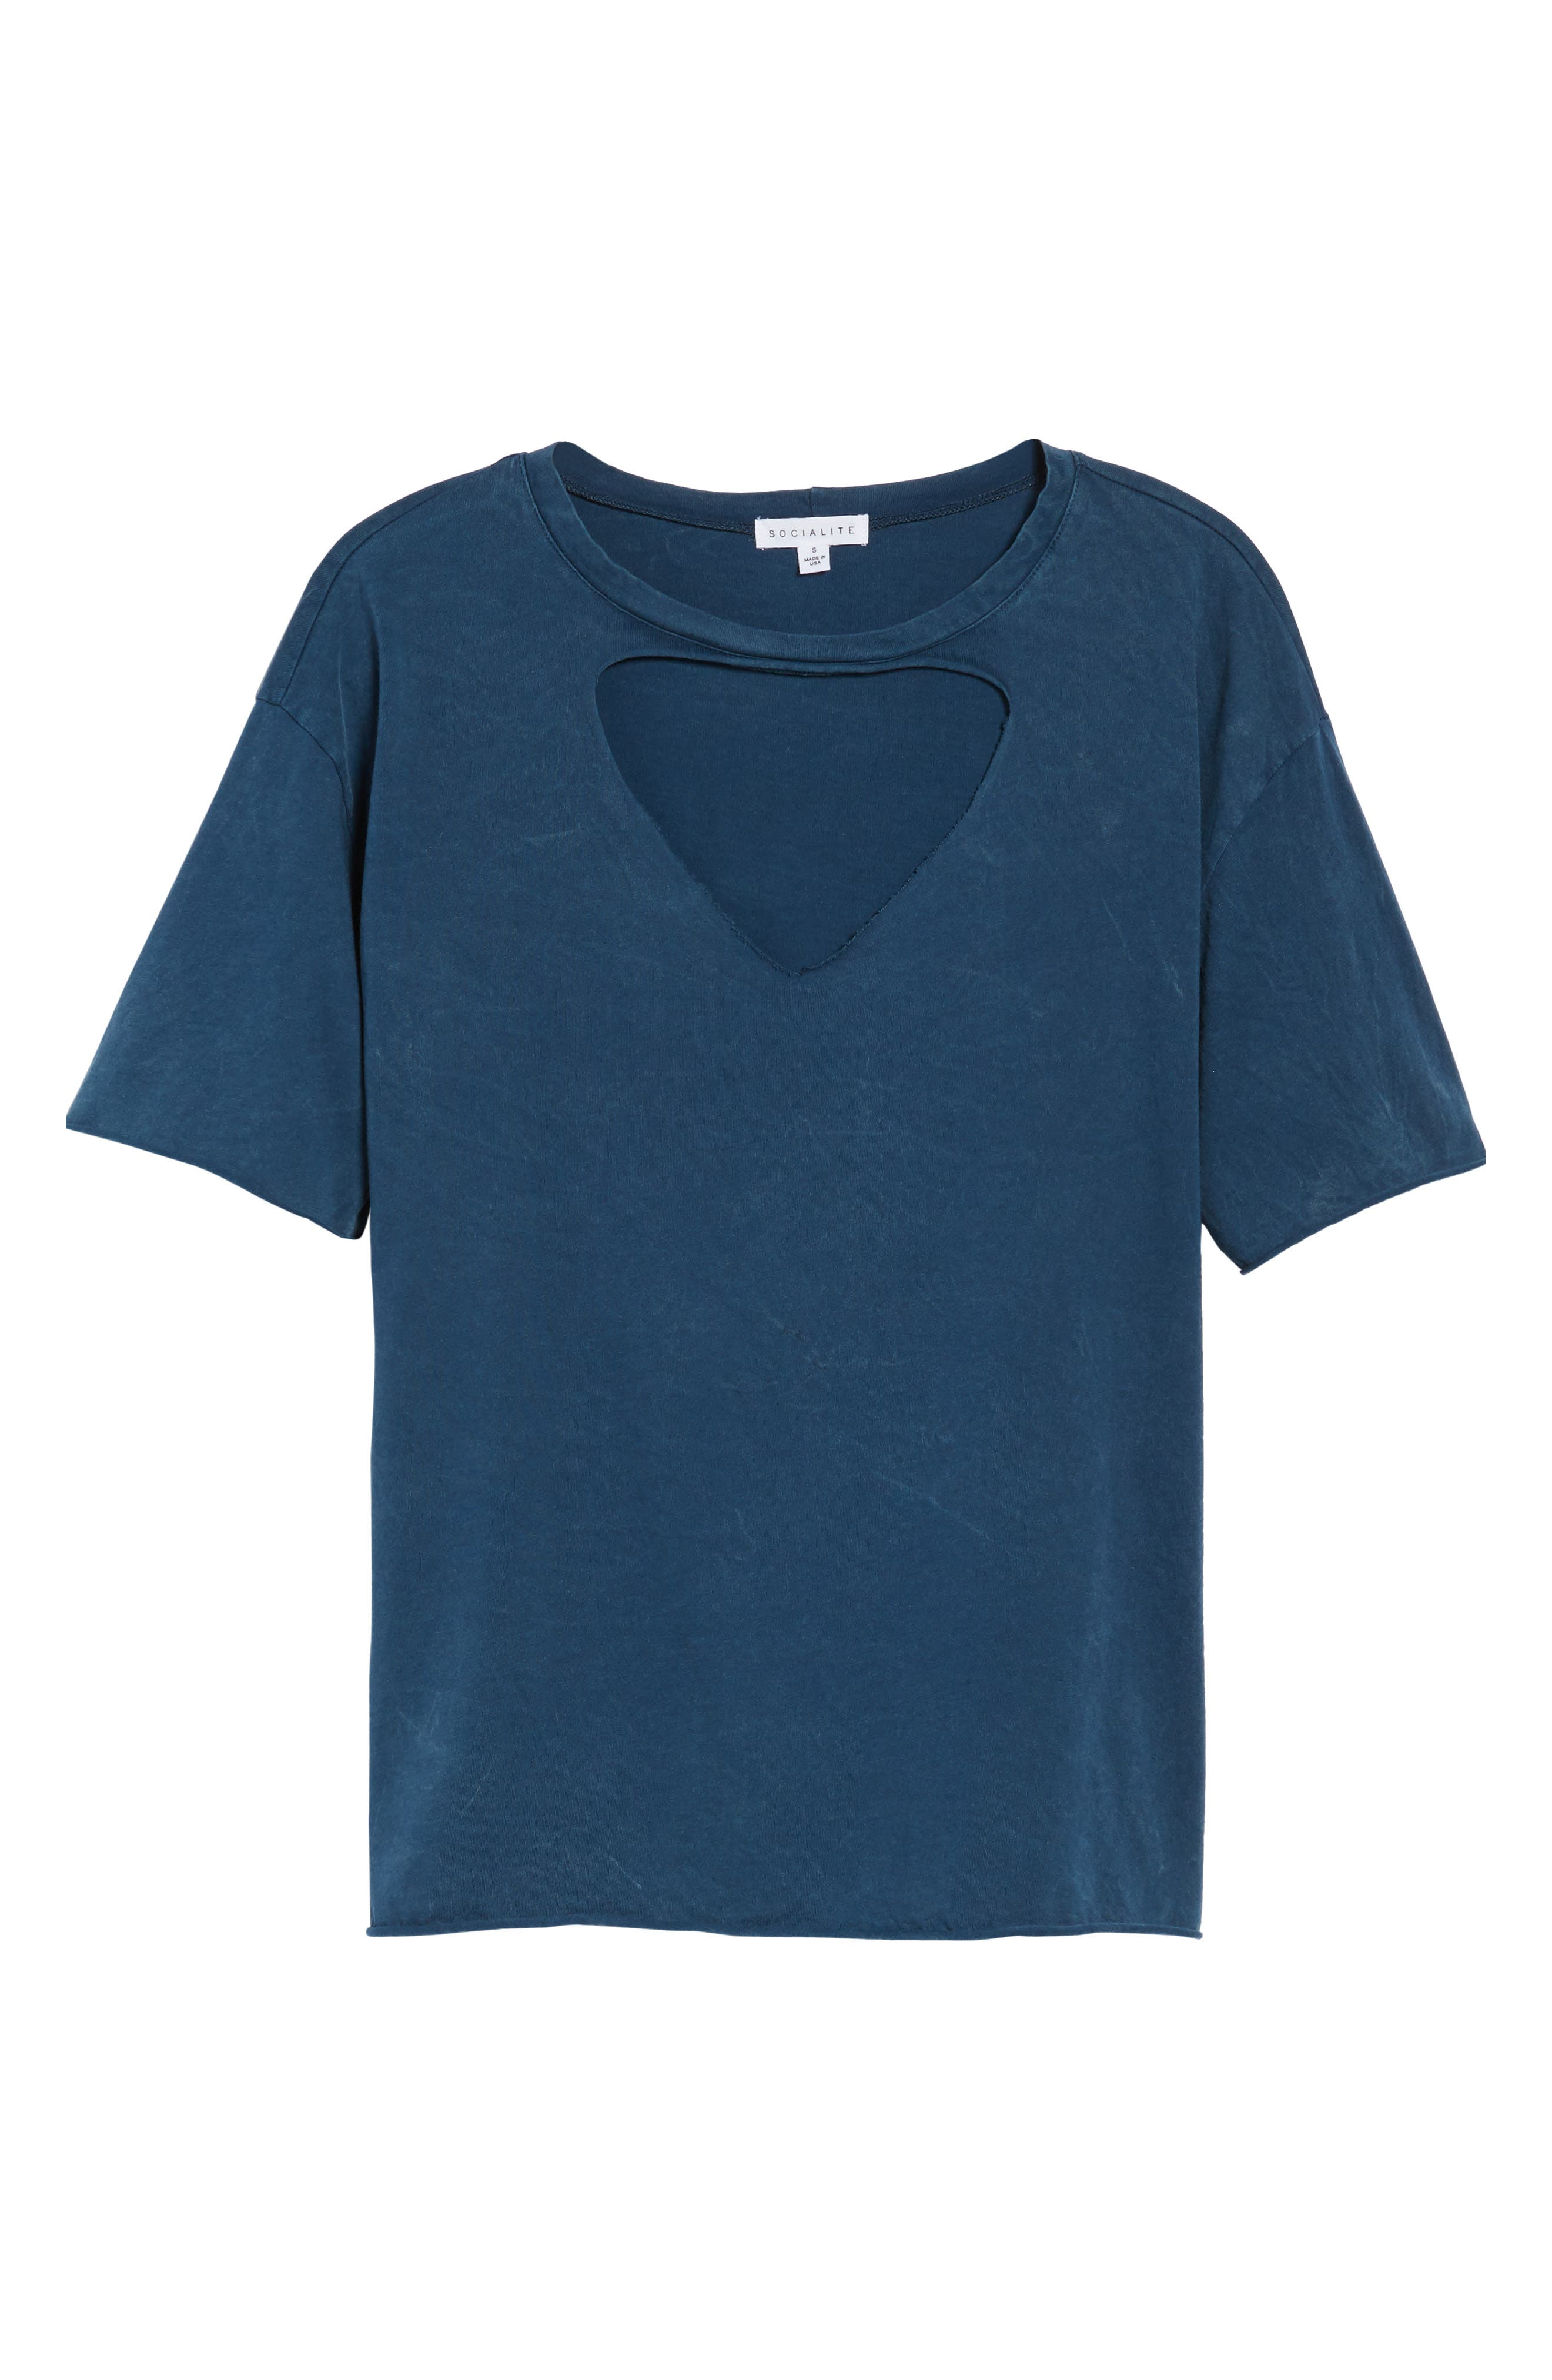 Front Cutout Tee,                             Alternate thumbnail 6, color,                             Teal